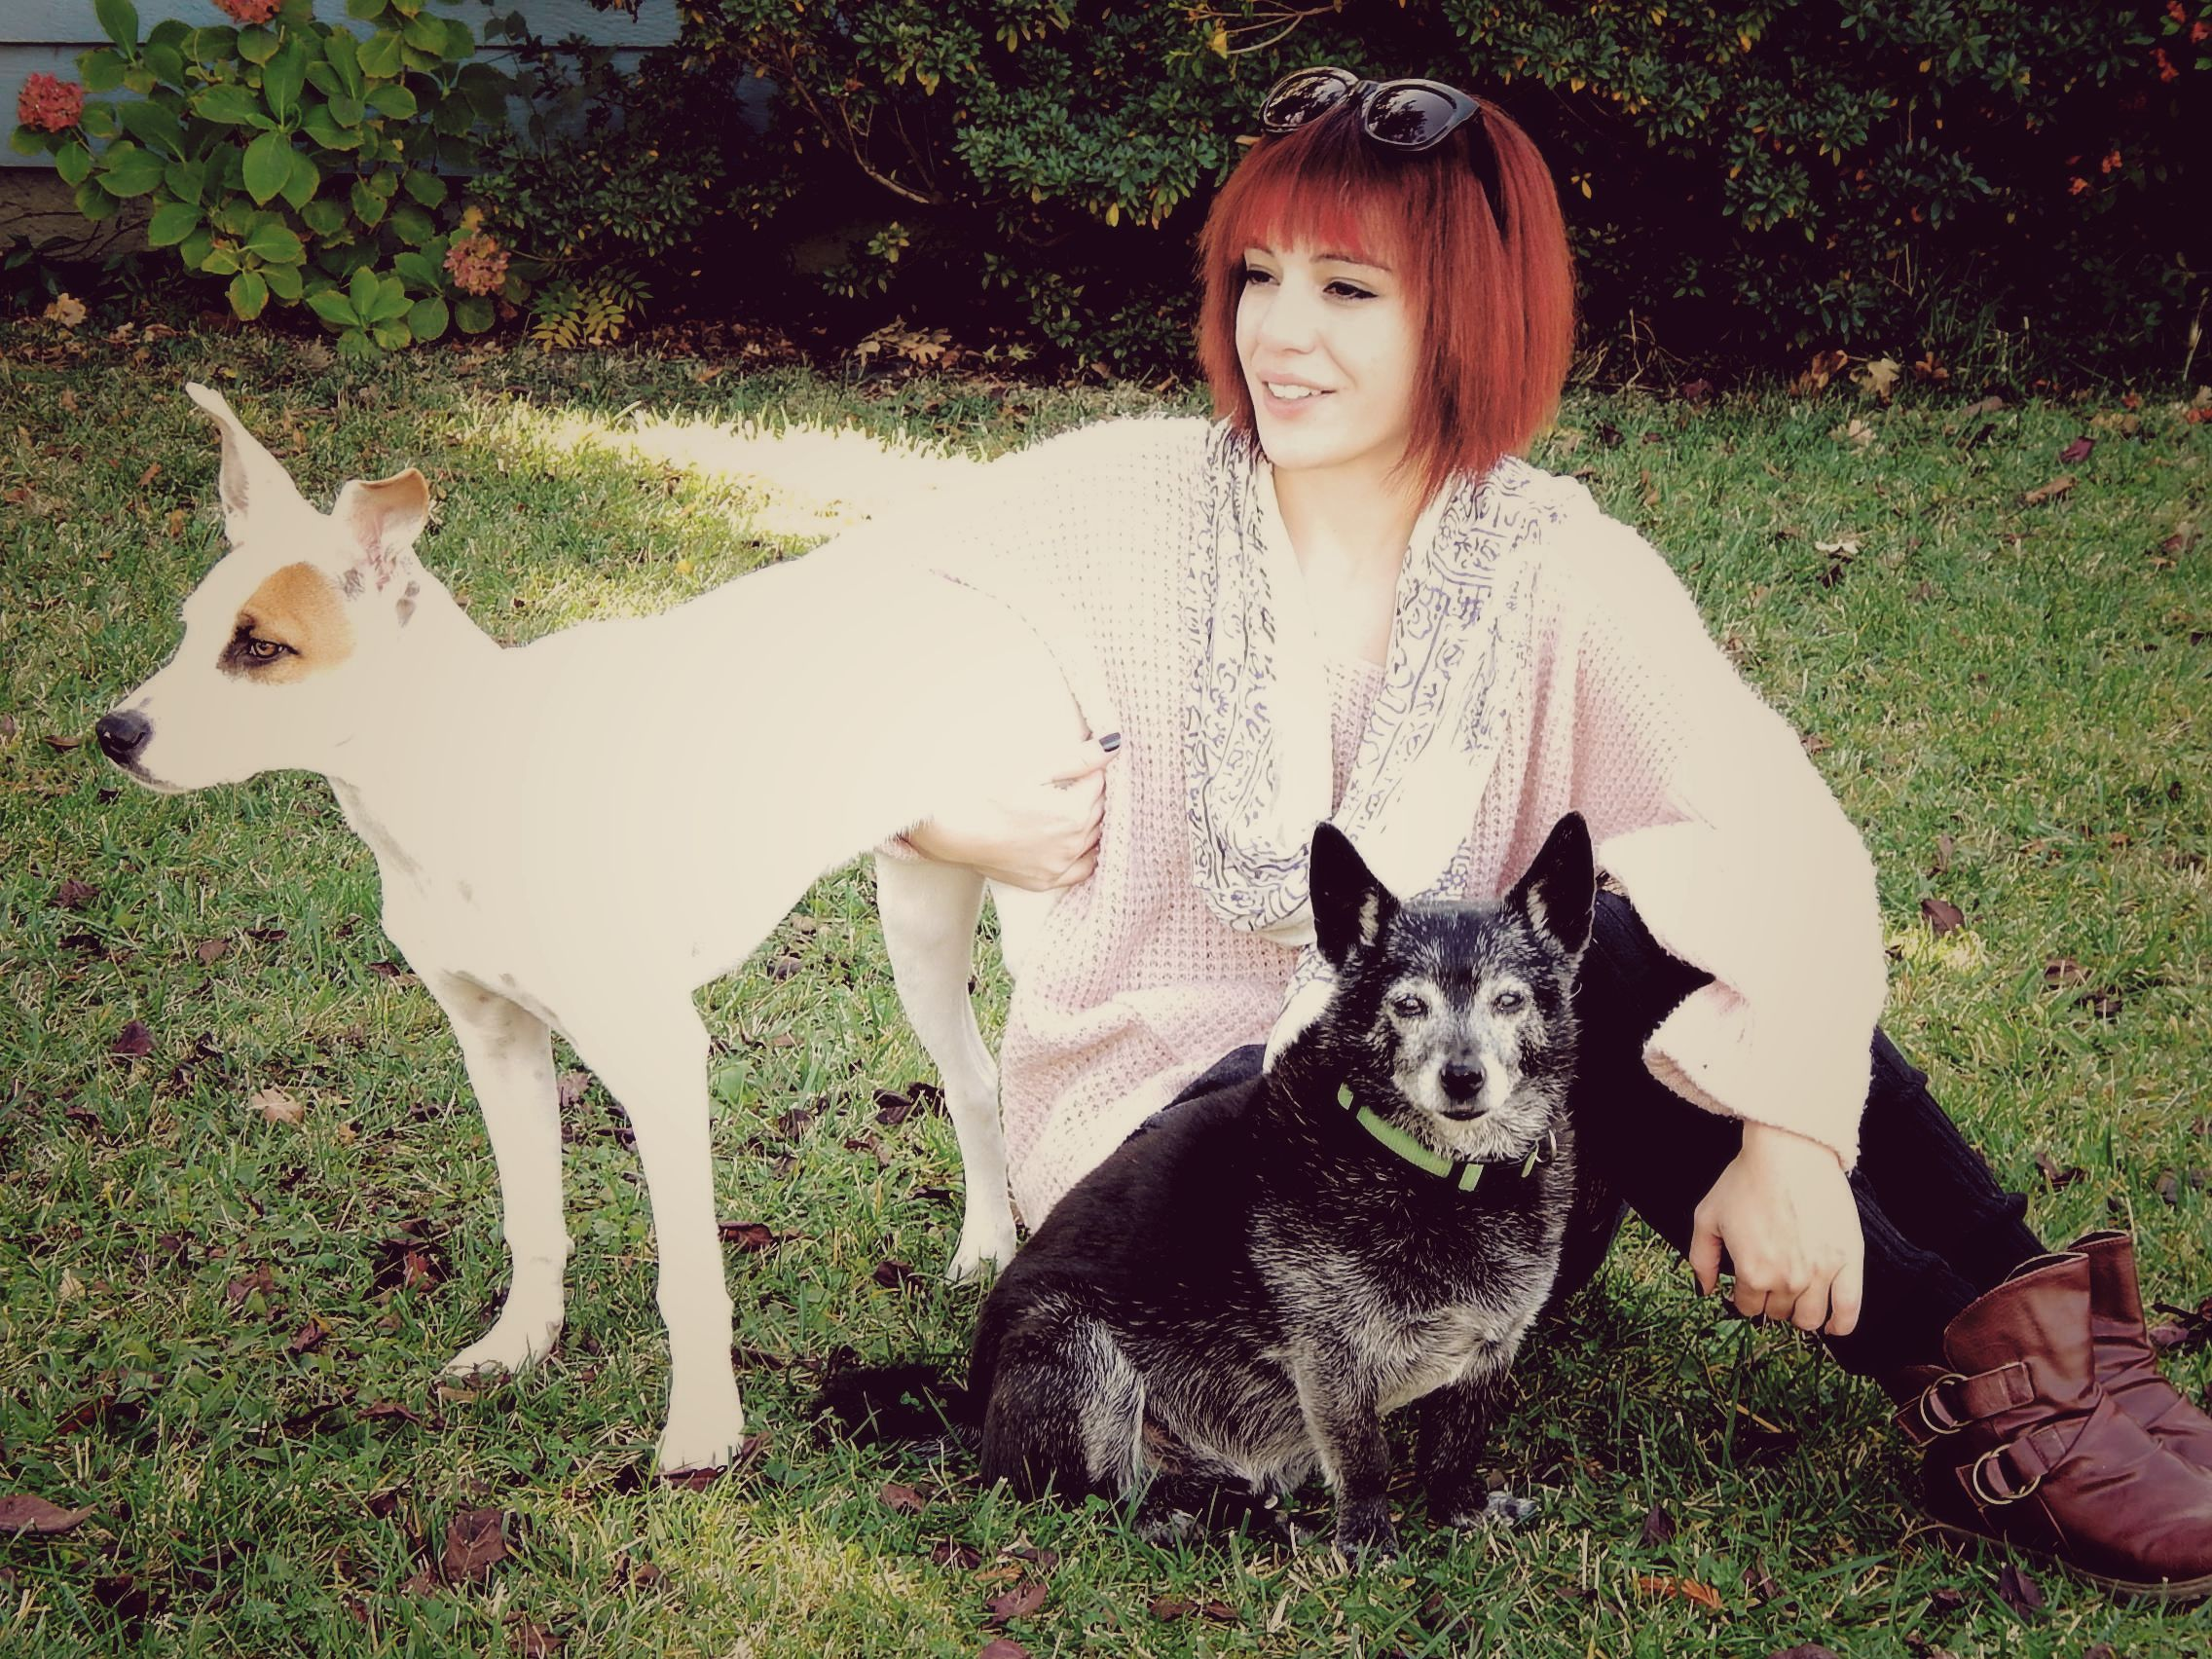 oversized sweater, leg warmers over lace tights, boots, and my boyfriend's dogs posing as fashion accessories, lol.